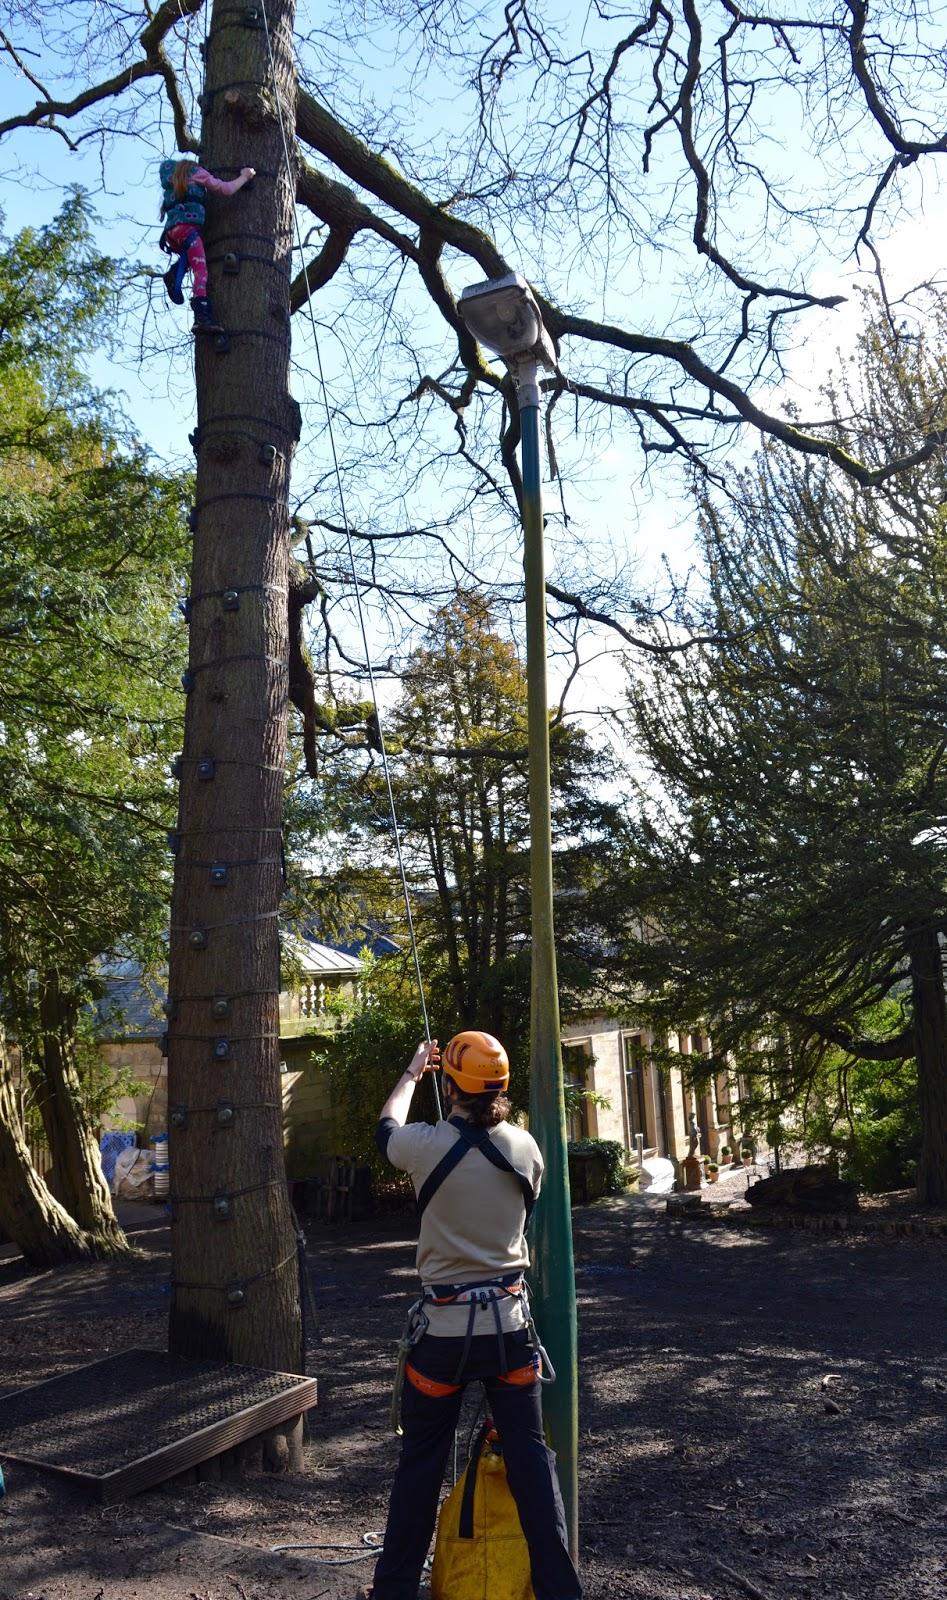 Beamish Wild | School Holiday Club & Activities in County Durham | North East England - climbing to the top of the tree